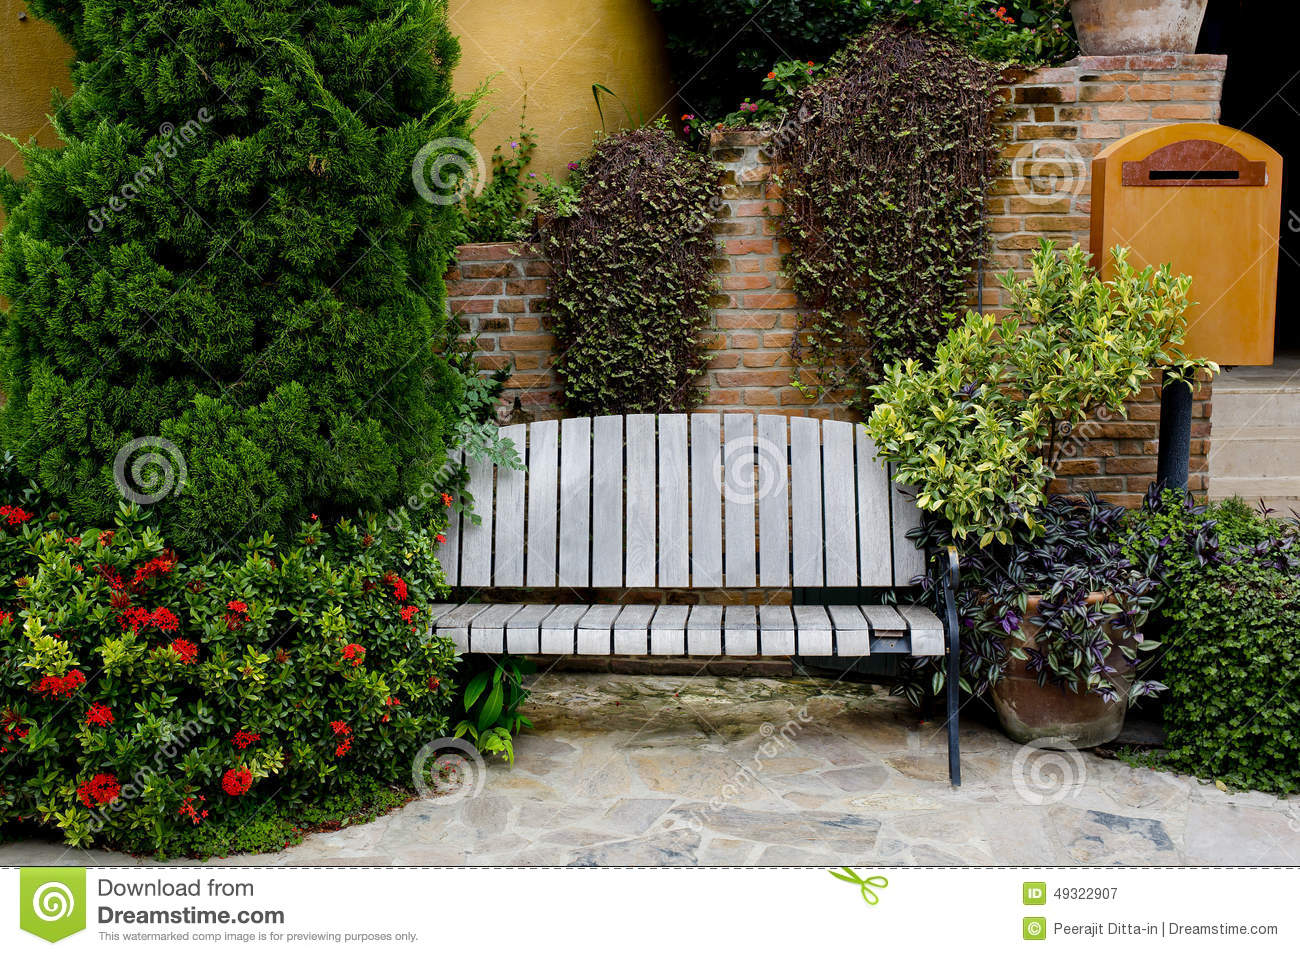 Classic Garden Bench Stock Photo - Image: 49322907